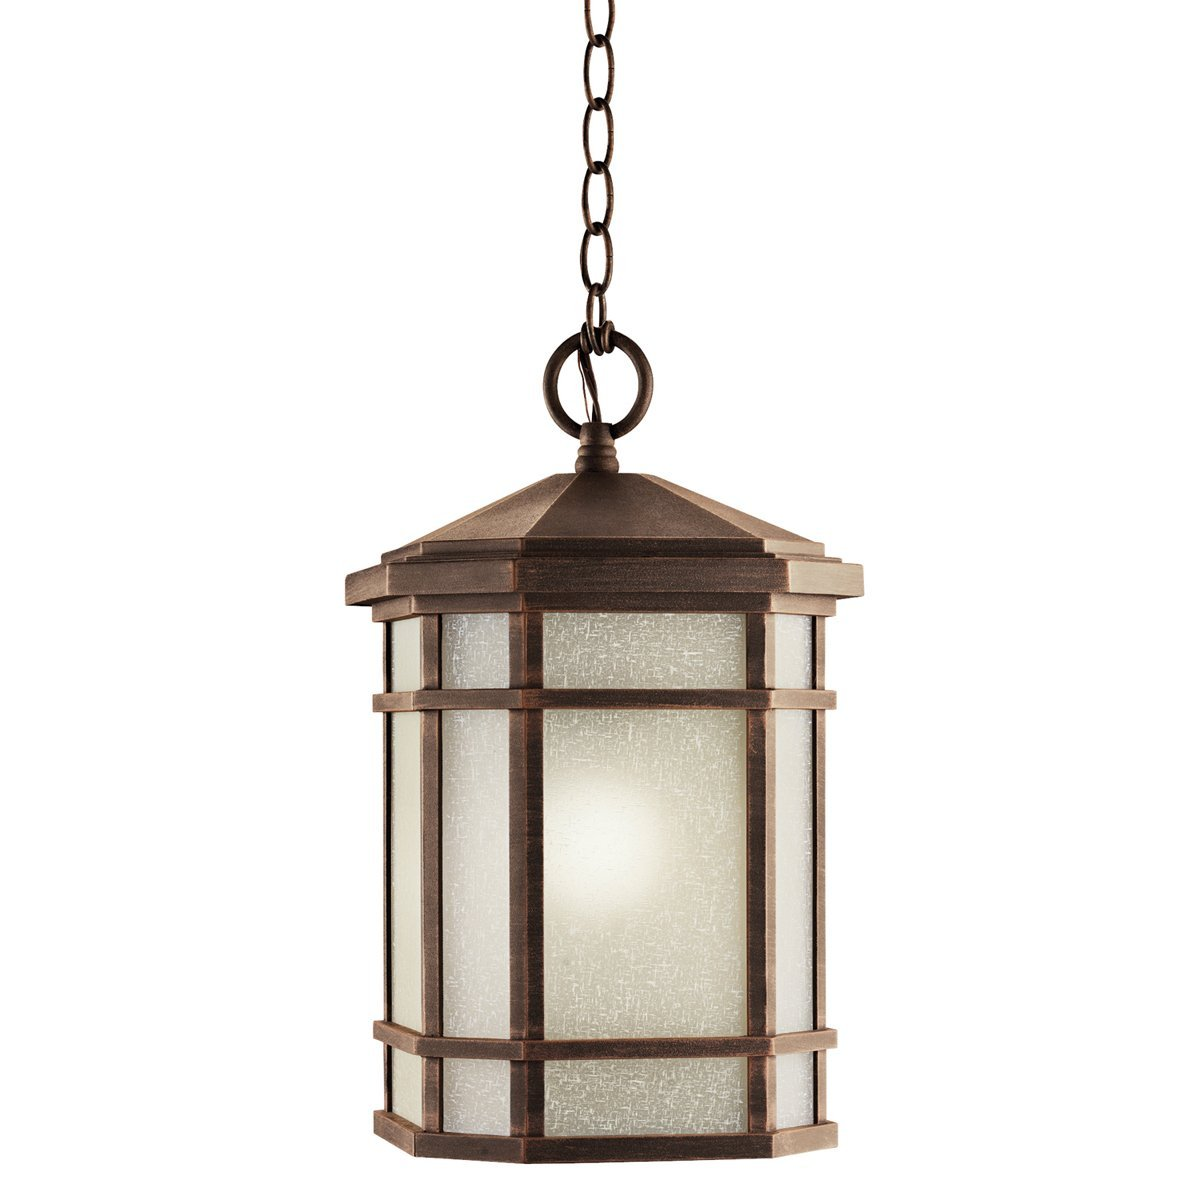 (Ship from USA) Kichler 9511PR Cameron 1 Light Outdoor Hanging Pendant in Prairie Rock /ITEM NO#E8FH4F85467233 by Kichler